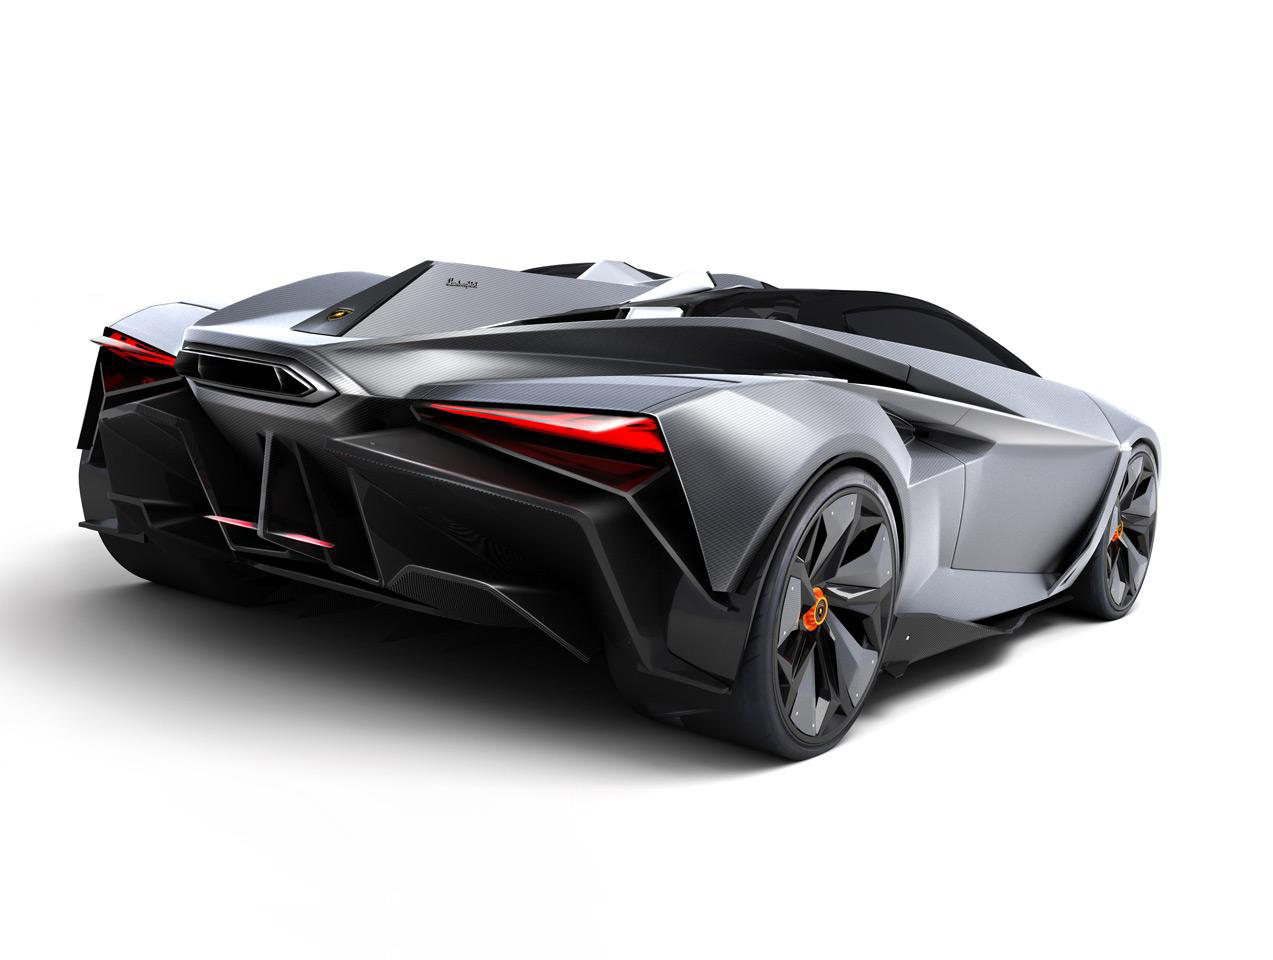 College Design Student Envisions Extreme Lamborghini Supercar to Compete with Veyron SS